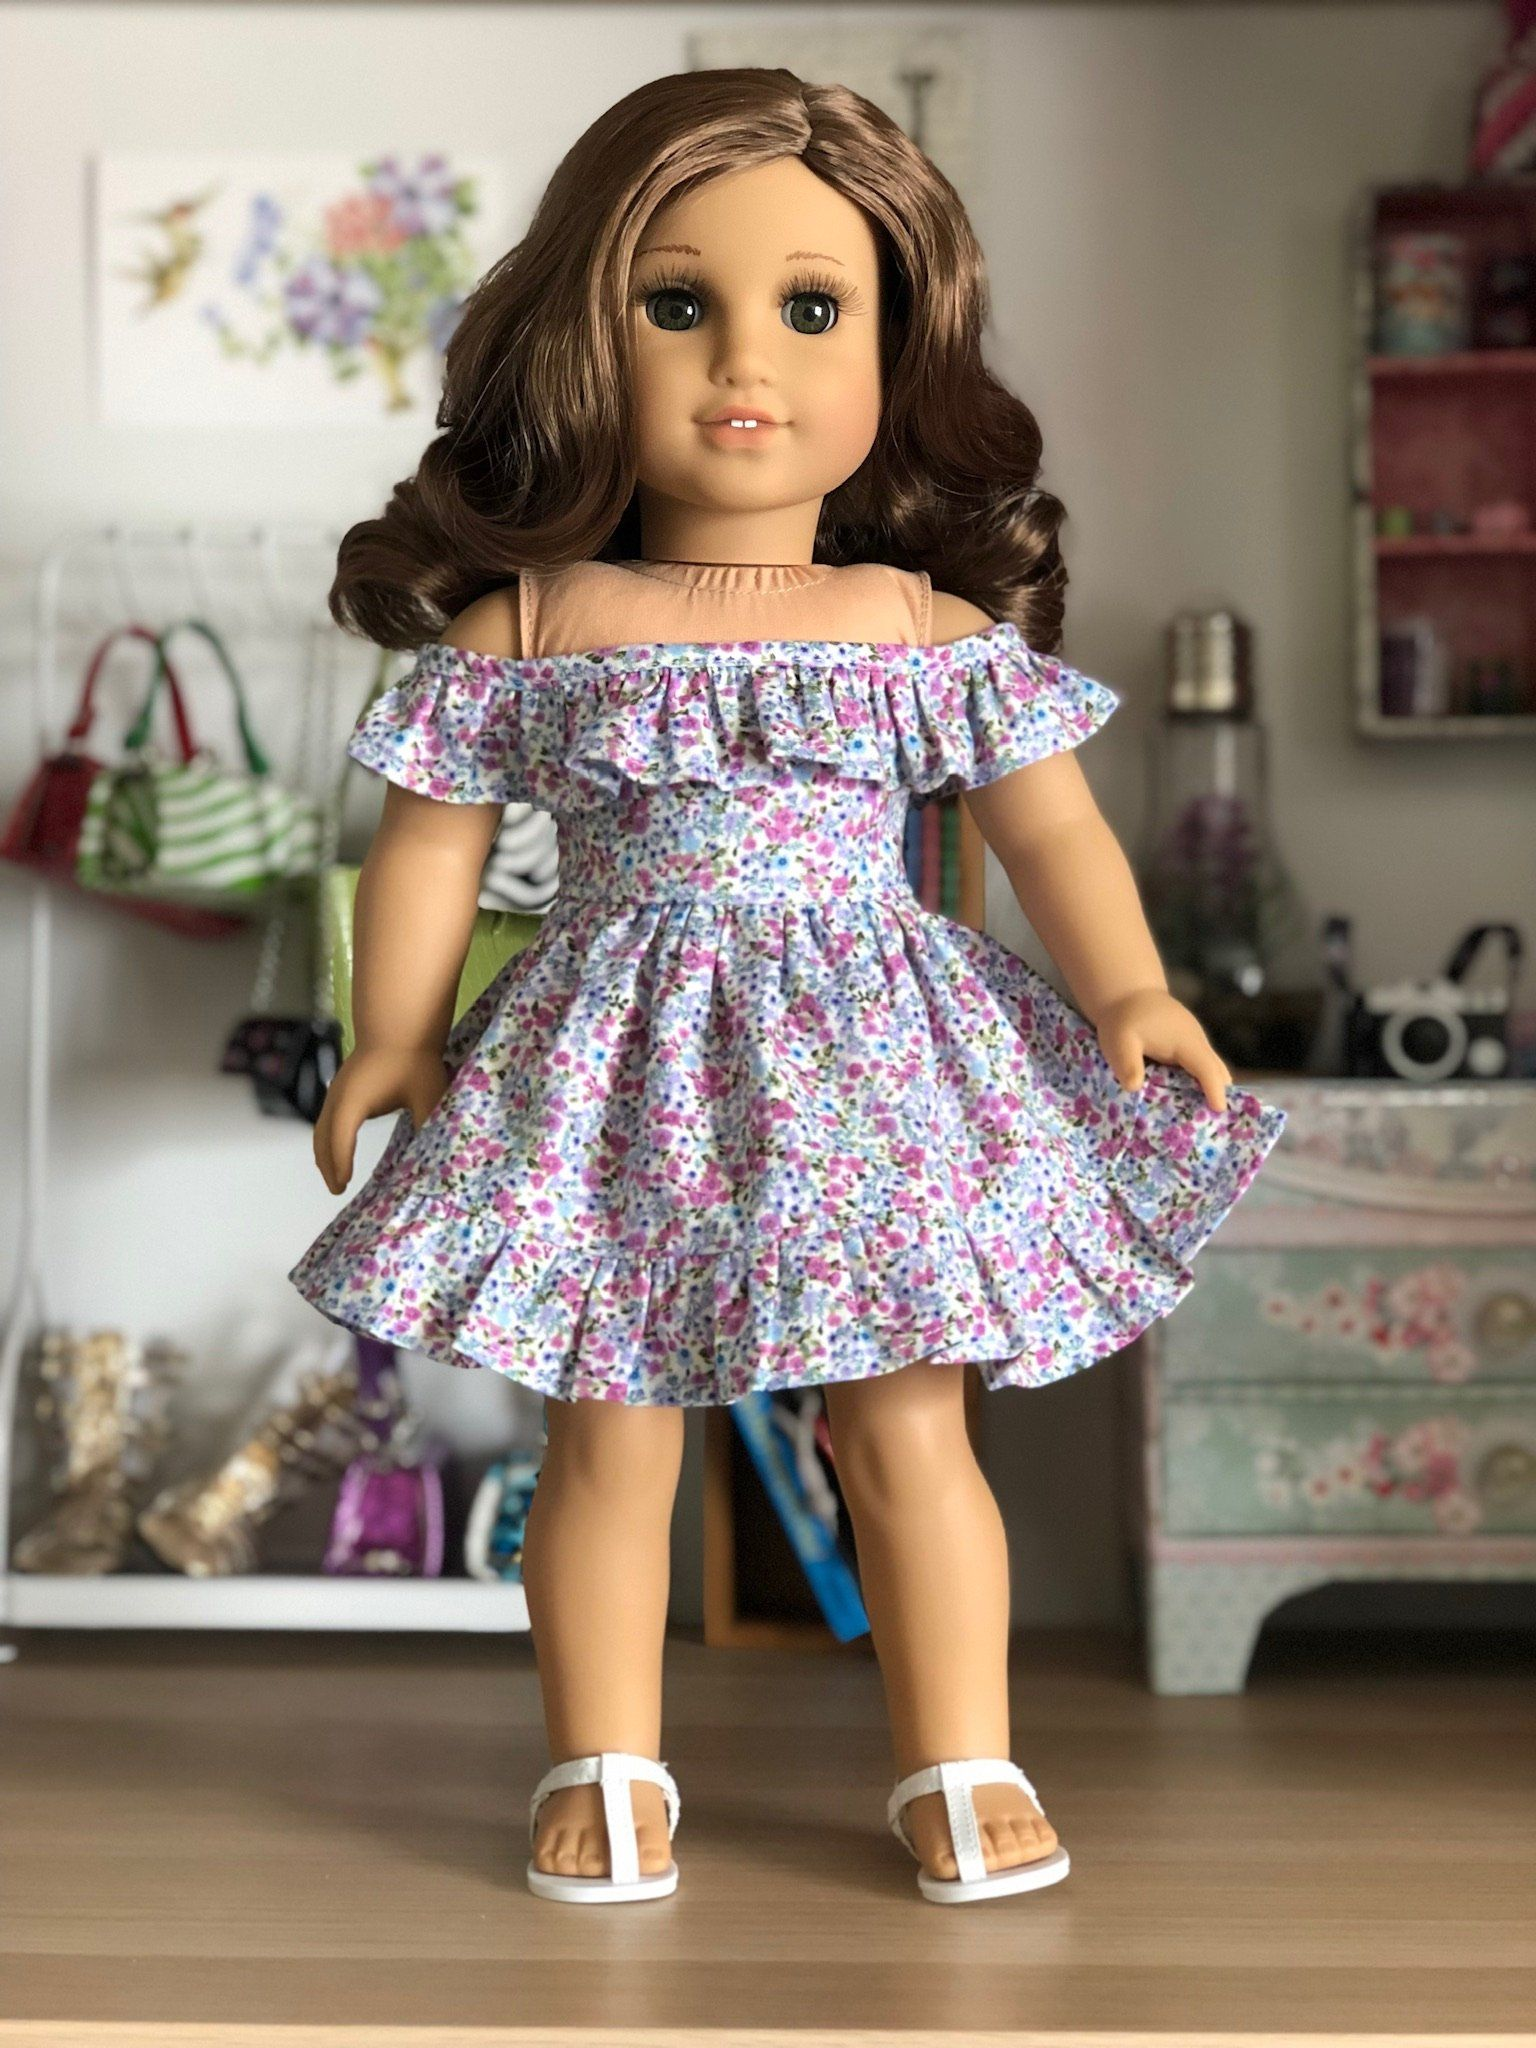 18 inch,18 doll clothes- Off the shoulder sleeveless ruffle dress in a dainty floral print #18inchdollsandclothes